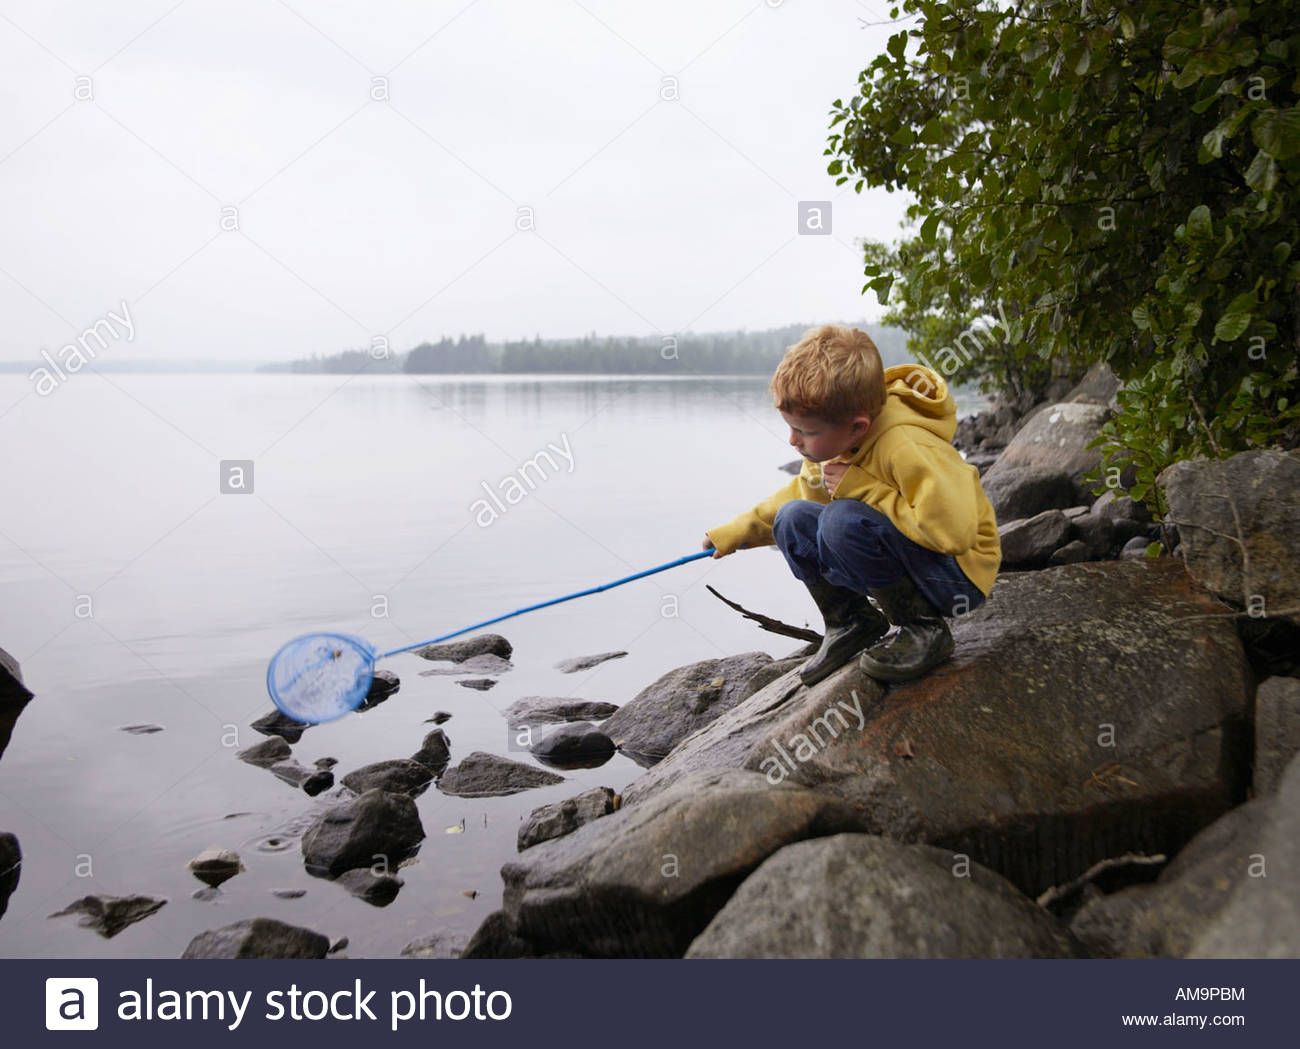 Young boy crouched on rocks fishing in a lake with a net. Stock Photo